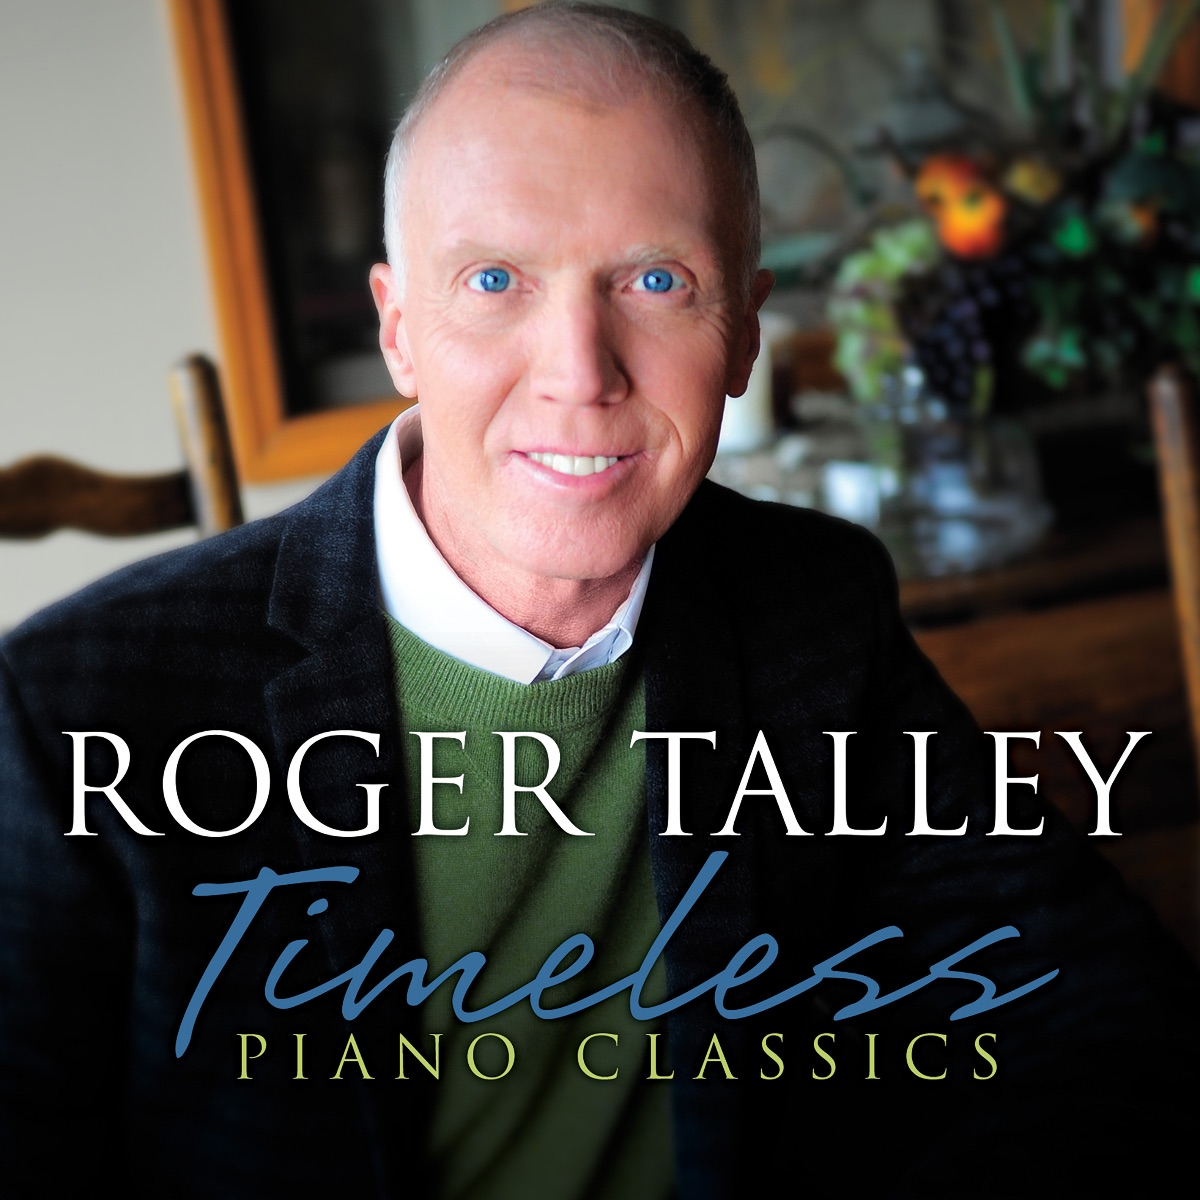 Roger Talley devotes his talents to beloved hymns on Timeless Piano Classics